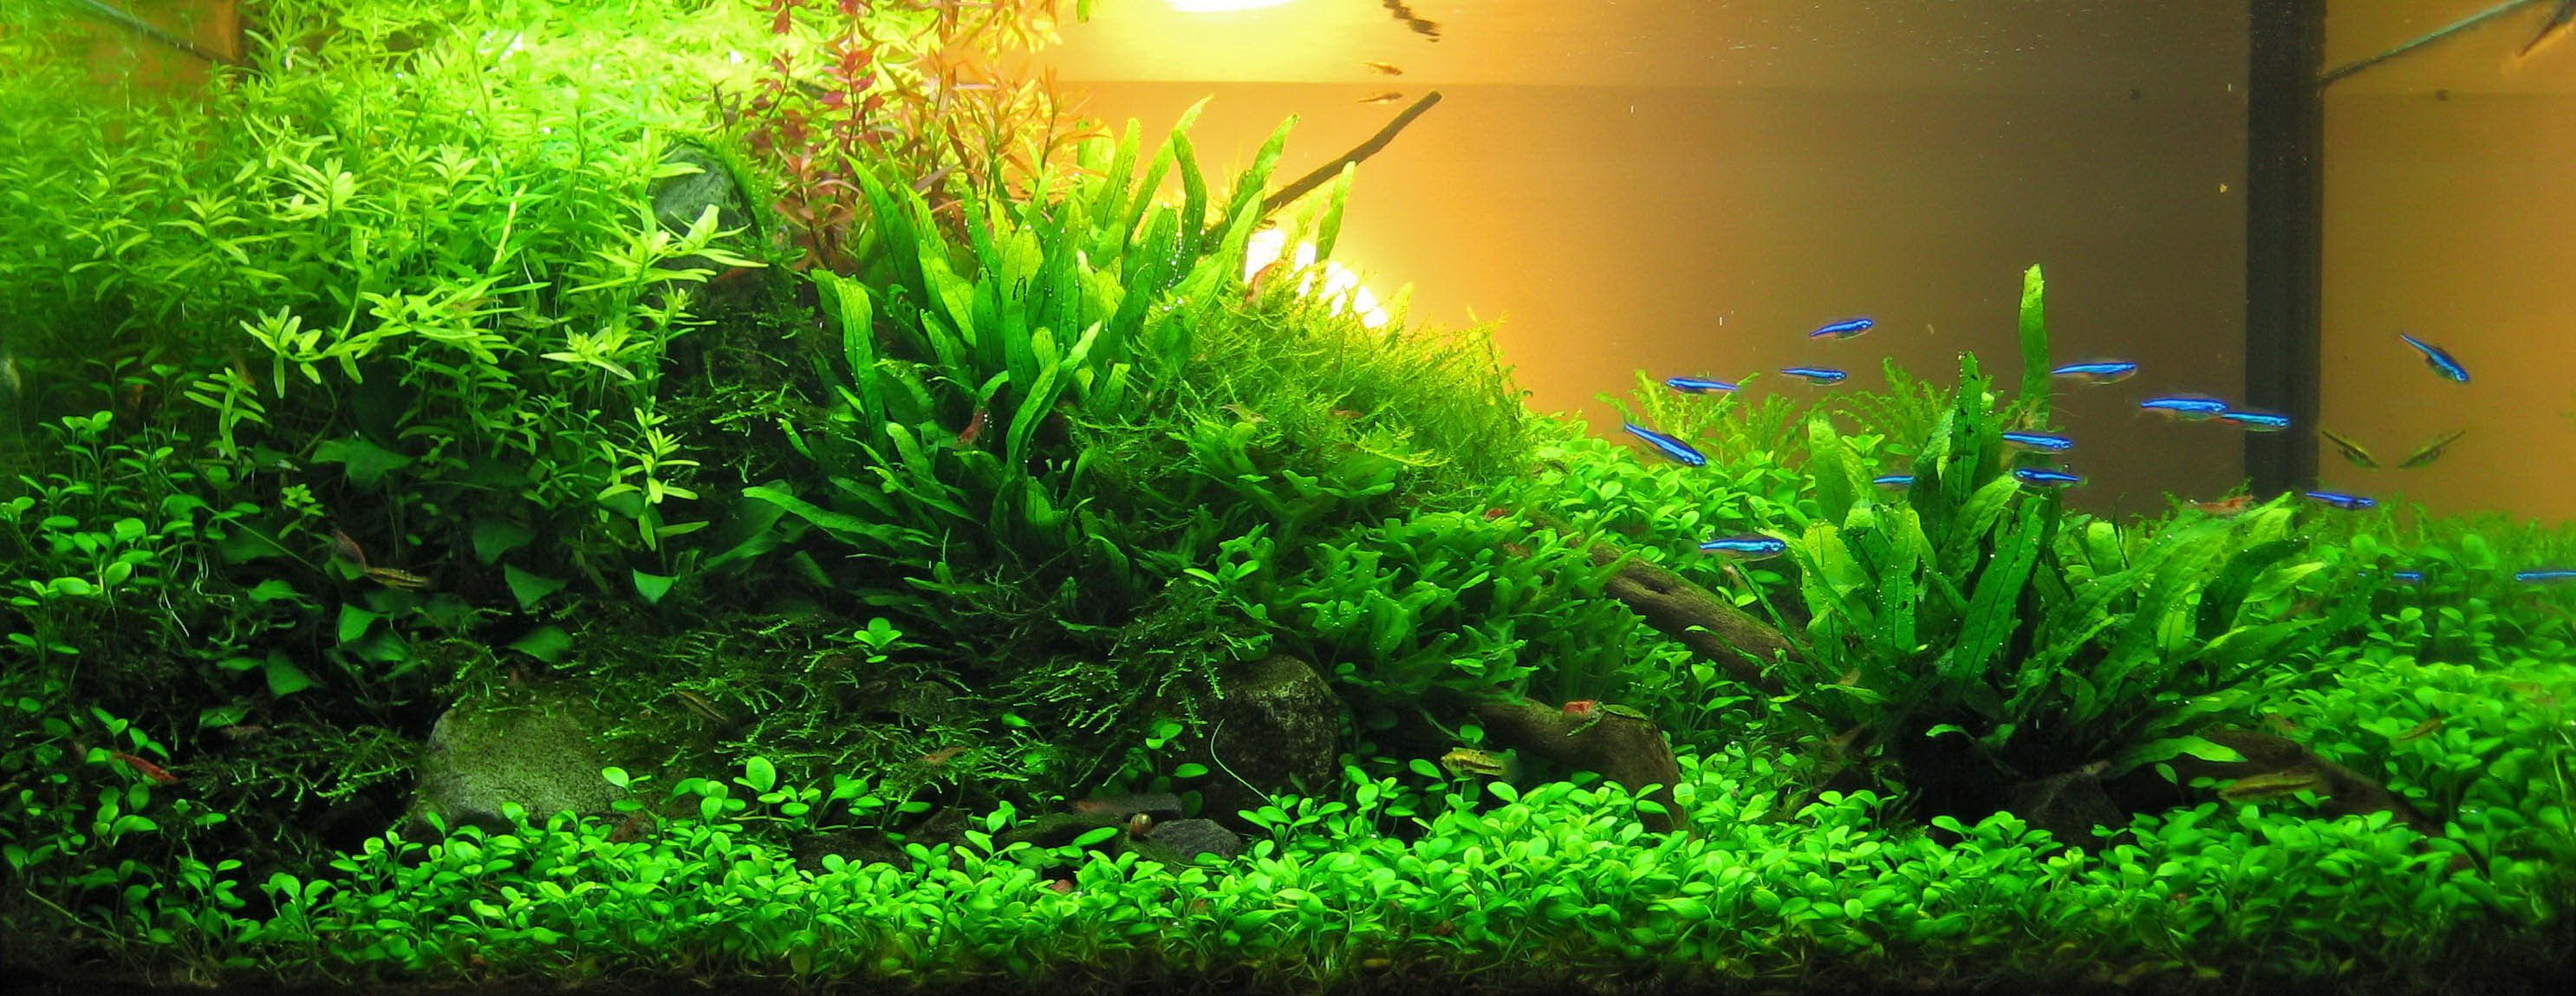 #Aquascape By Hoài Nam Nam Vũ #IAPLC2016 ........... PIN BY Aqua Poolkoh |  Like It | Pinterest | Aquariums, Planted Aquarium And Vivarium